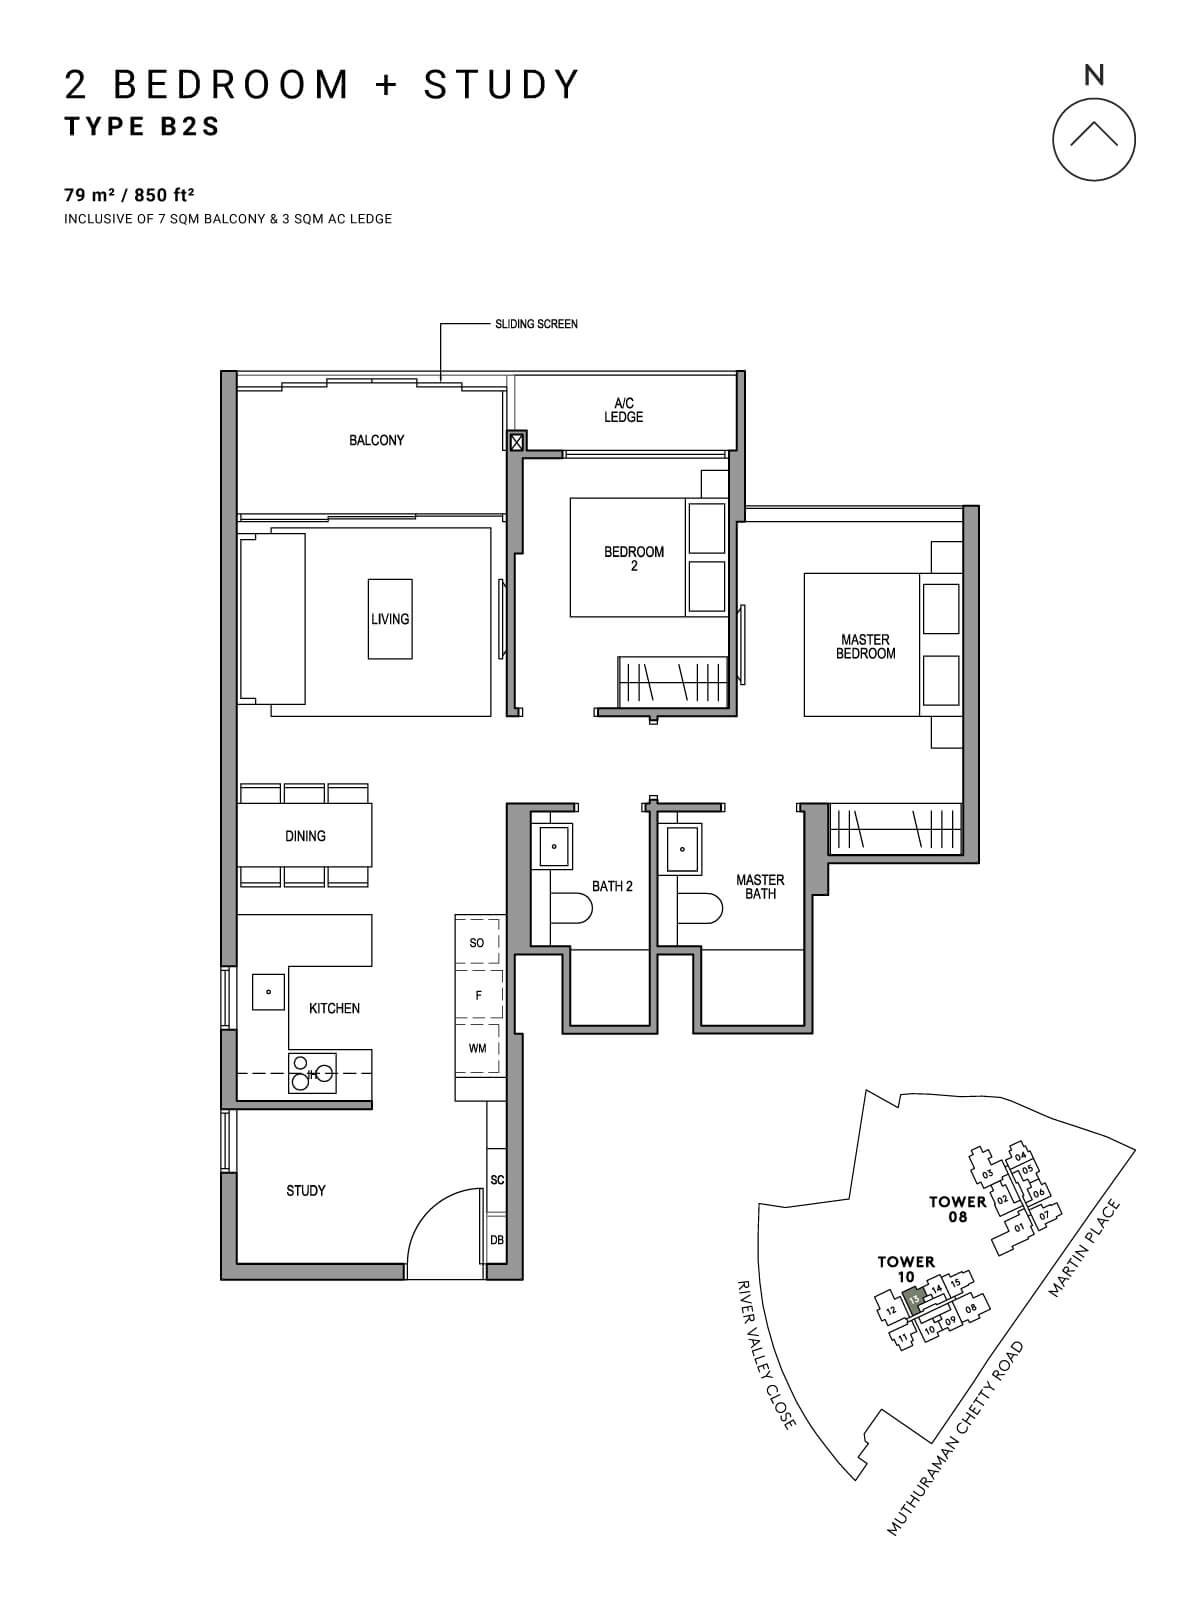 Martin Modern Floor Plan 2 Bedroom + Study Type B2S